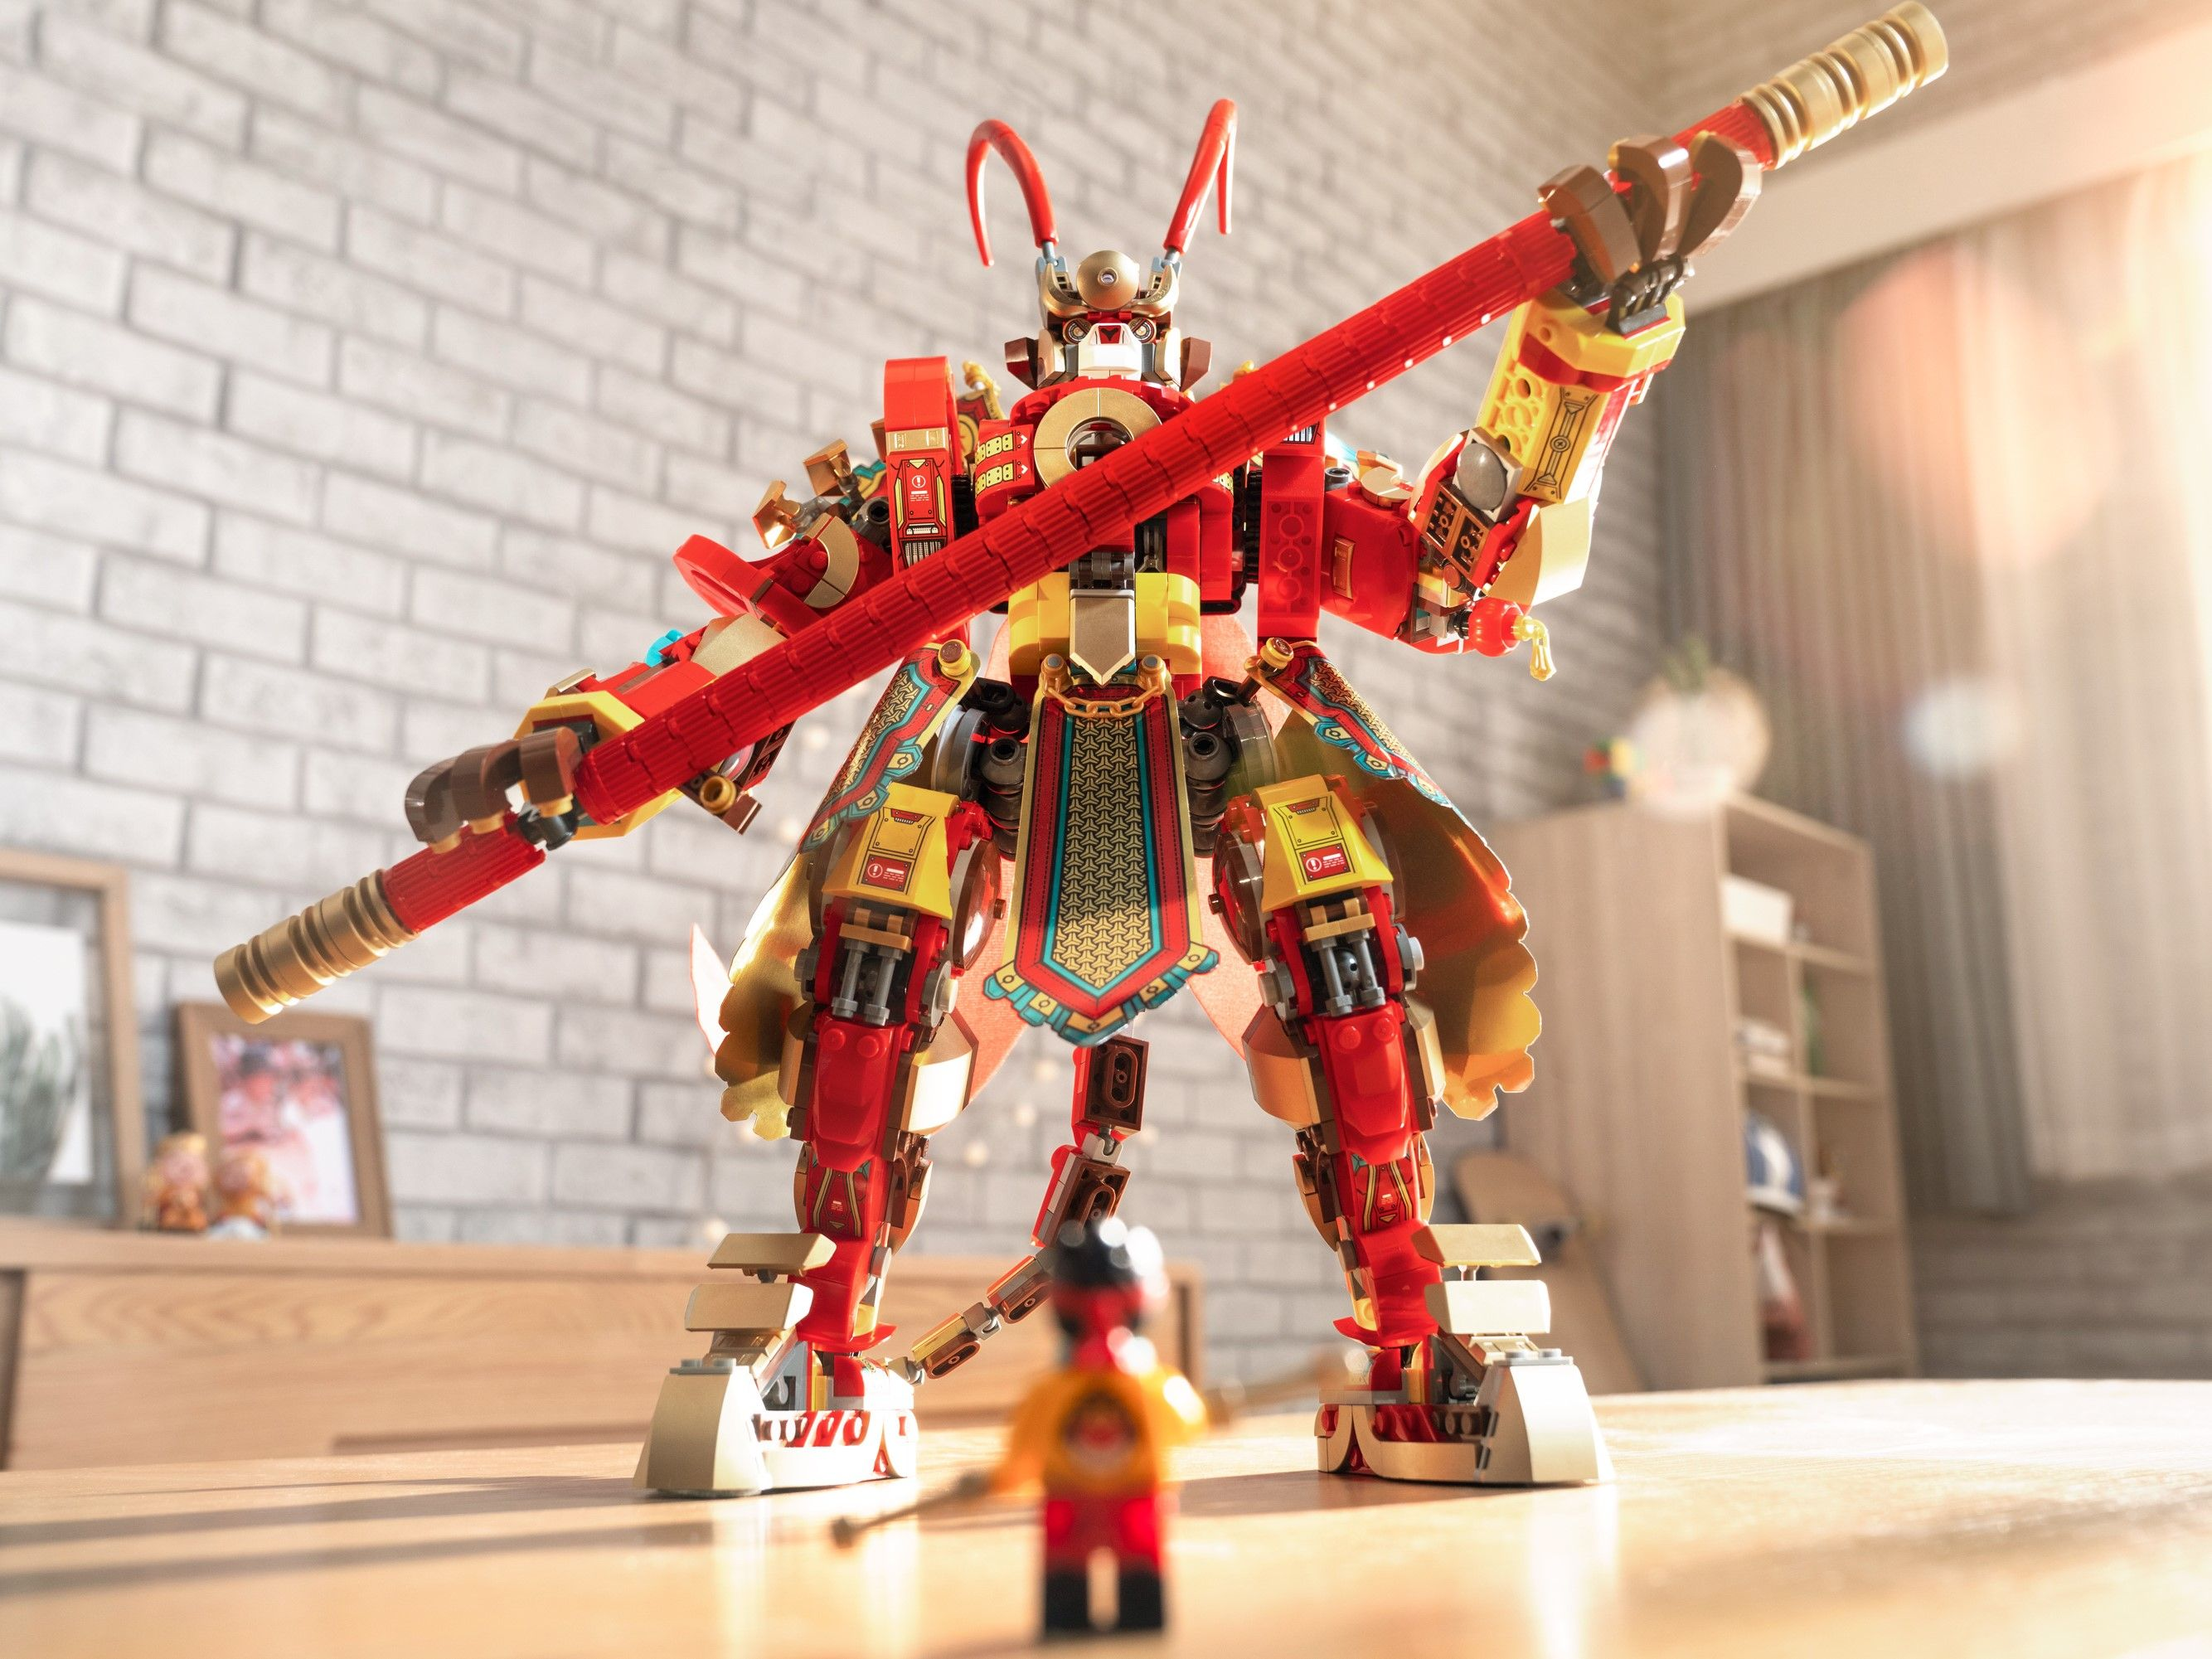 LEGO Monkie Kid 80012 Monkey King Mech LEGO_80012_alt15.jpg